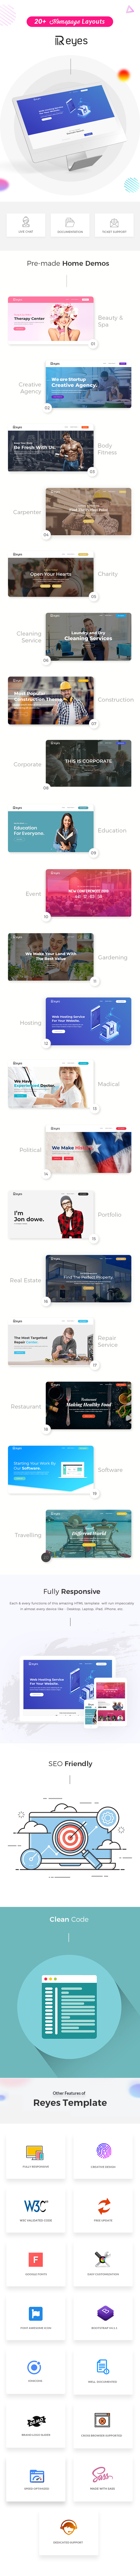 Bootstrap 4 Landing Page Template